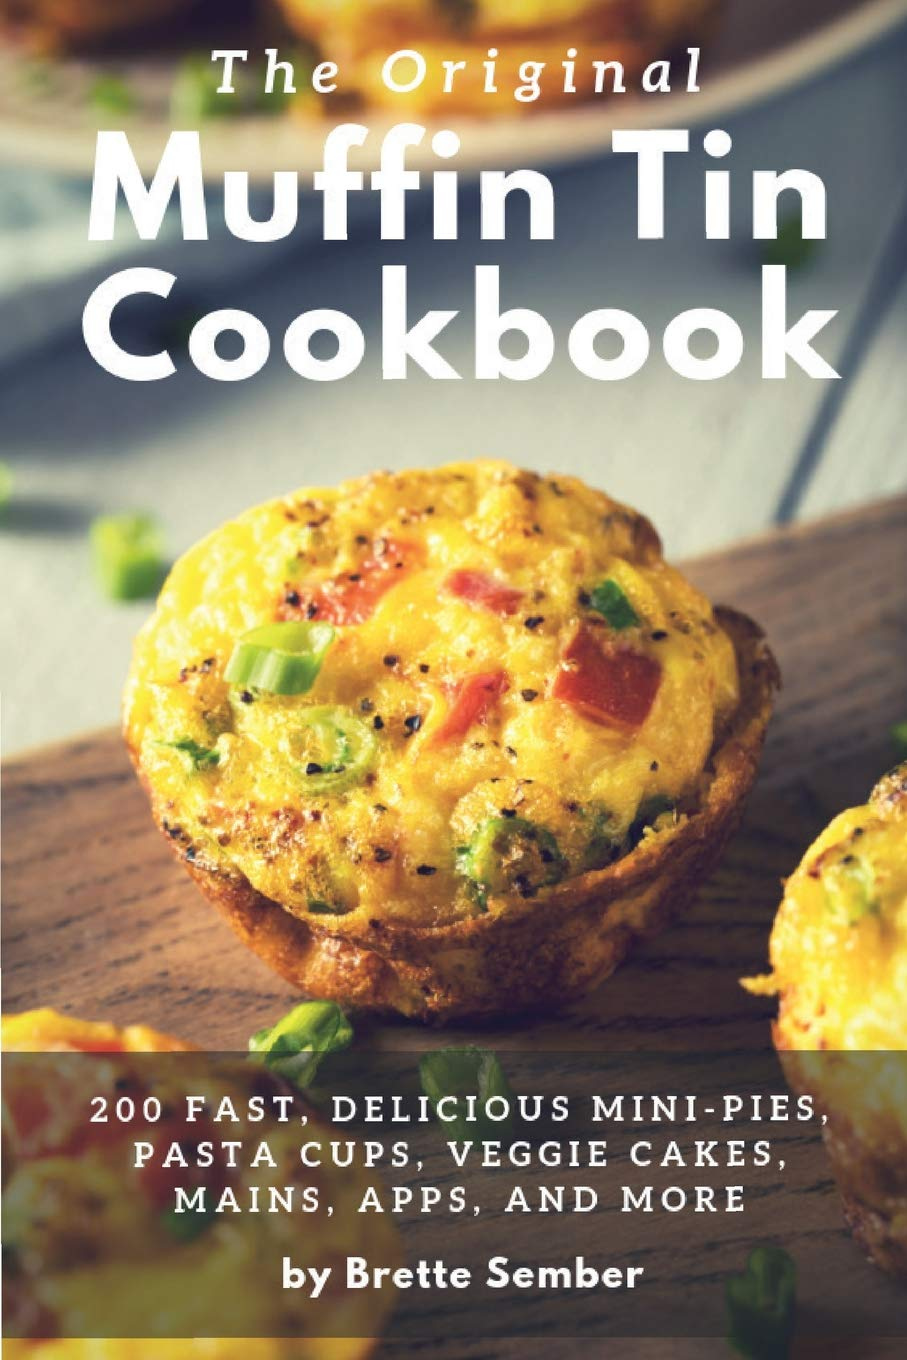 Original Muffin Tin Cookbook Delicious product image